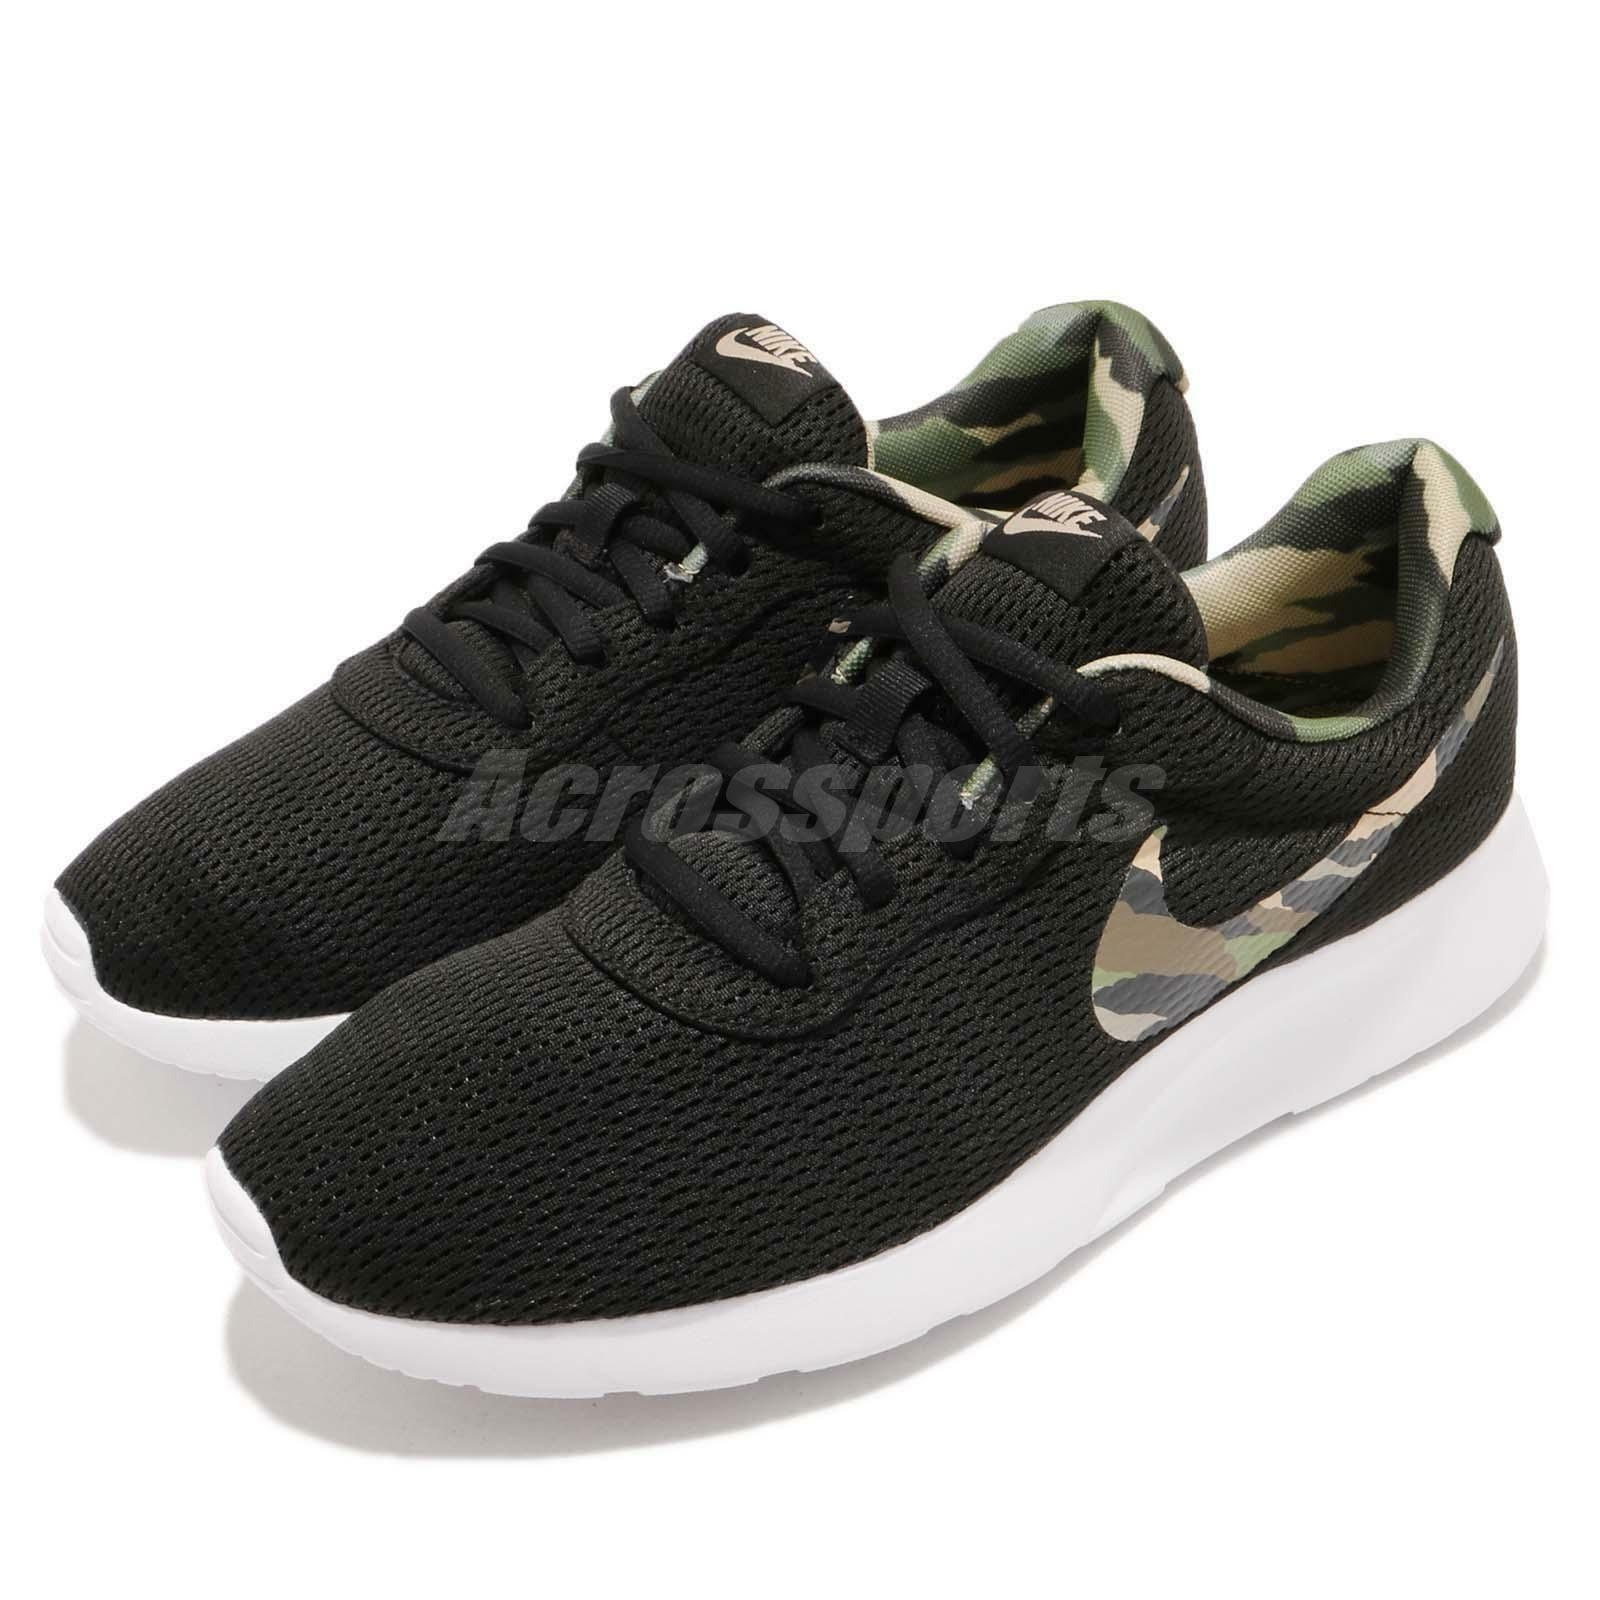 Nike Tanjun PREM Premium Black White Camo Men Casual shoes Sneakers 876899-200